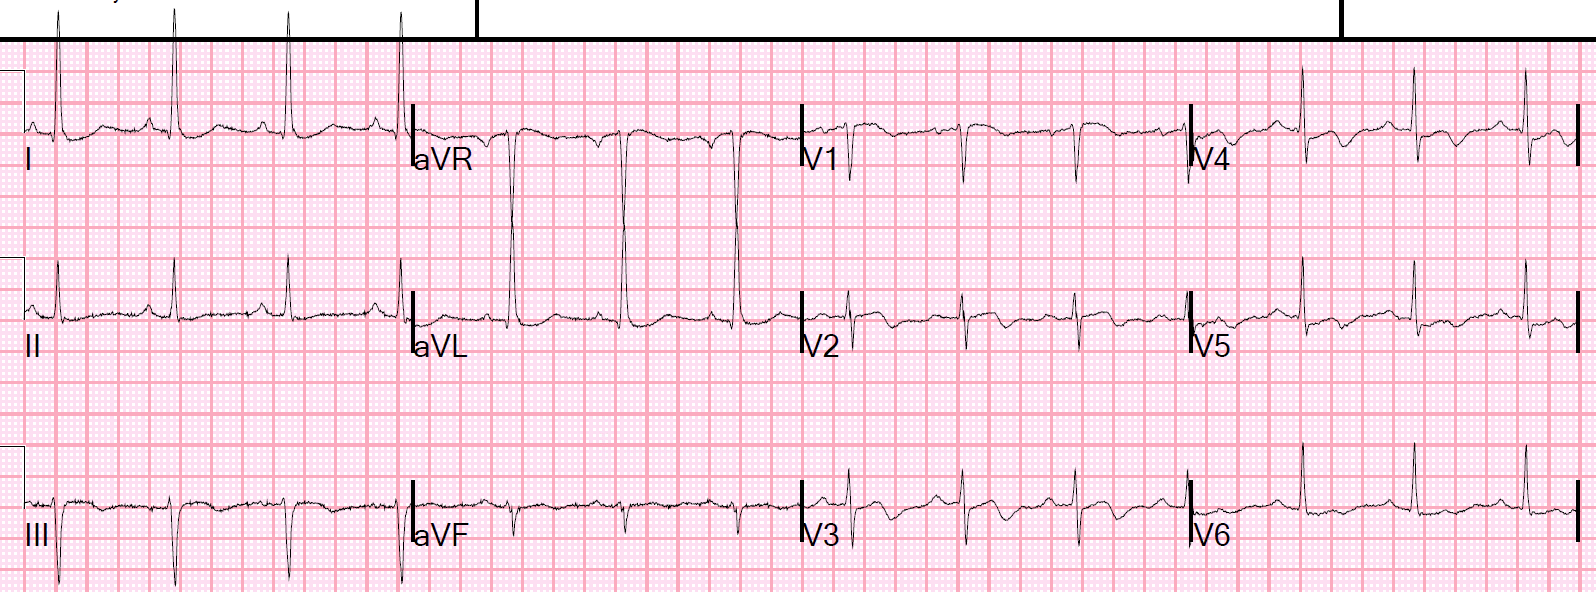 This demonstrates how Wellens' waves manifest the aftermath of a reperfused  STEMI